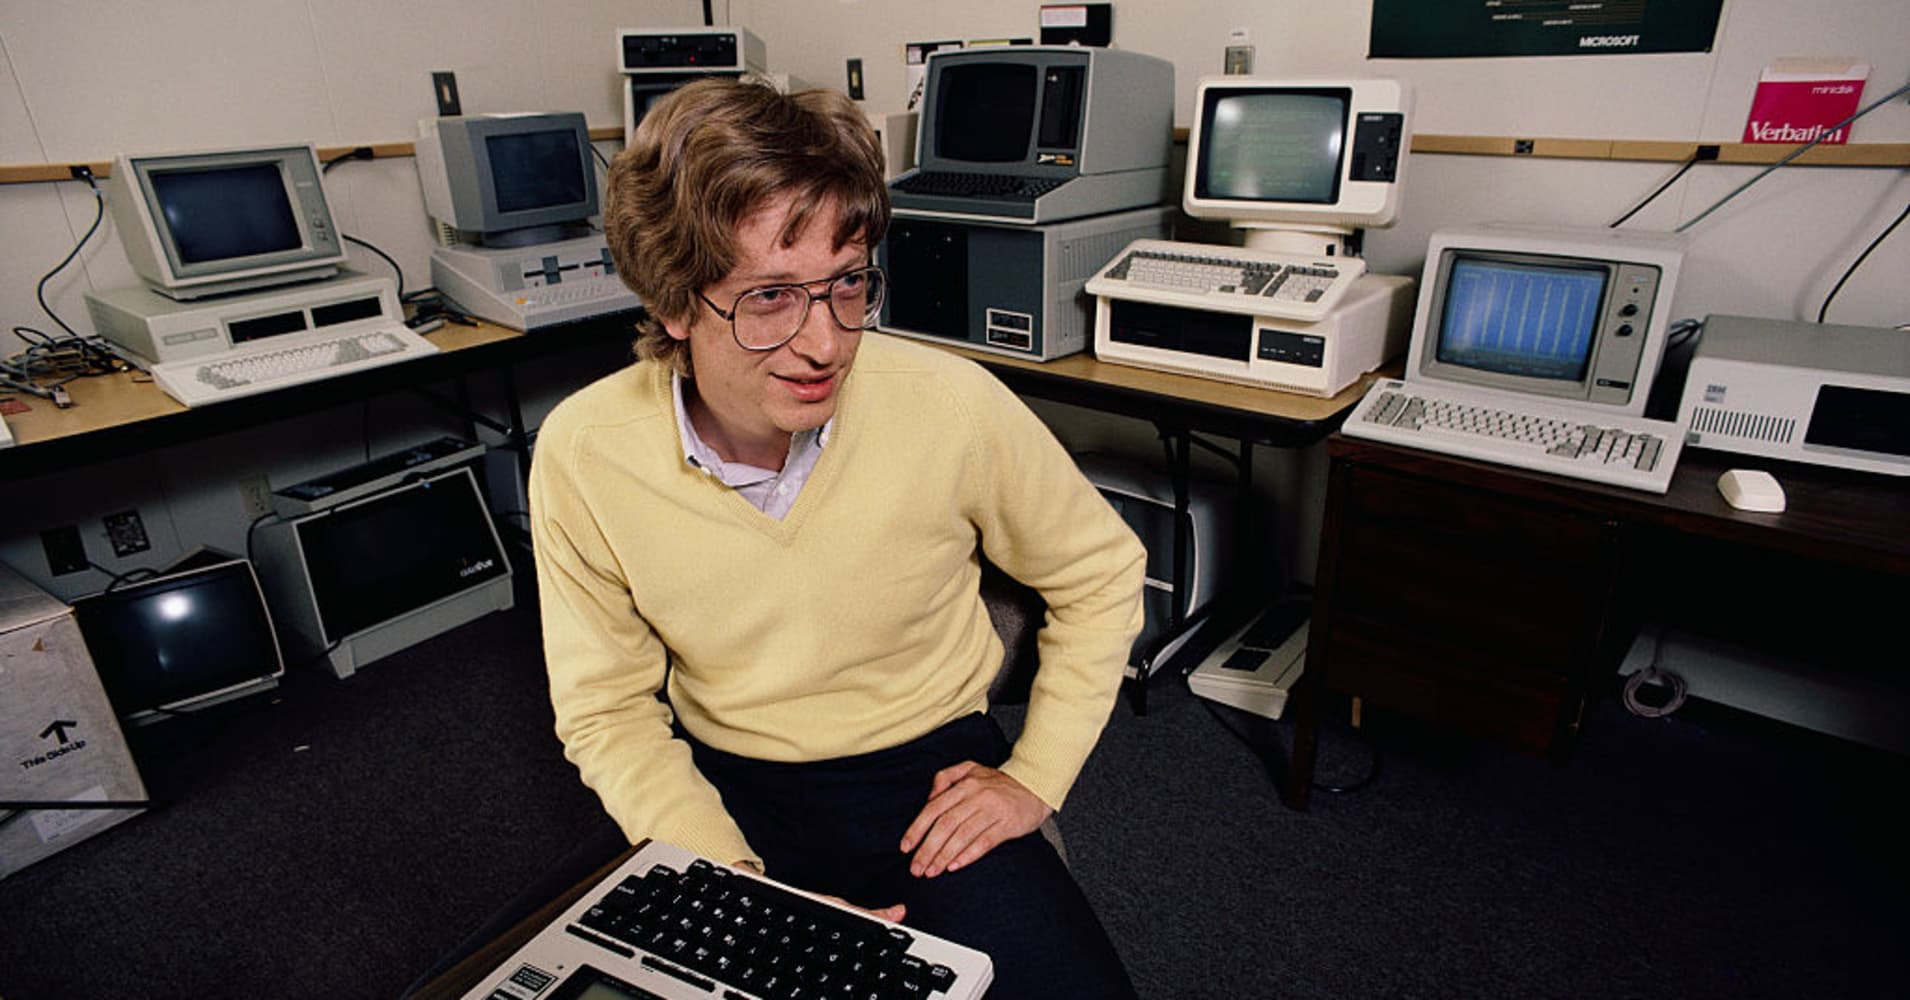 Advice Bill Gates would give to his 19-year-old self